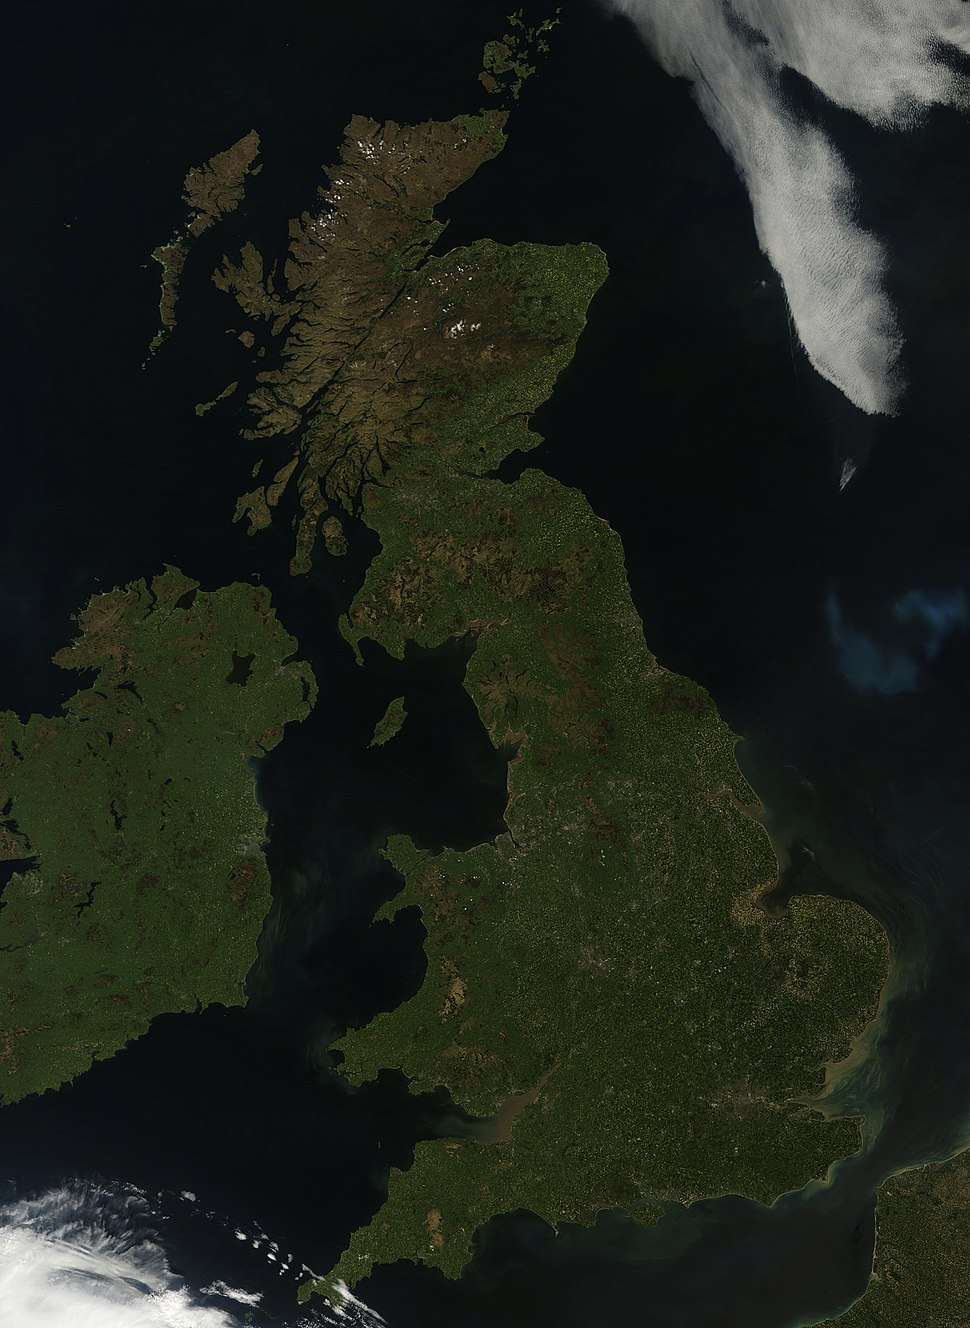 Satellite image of the United Kingdom